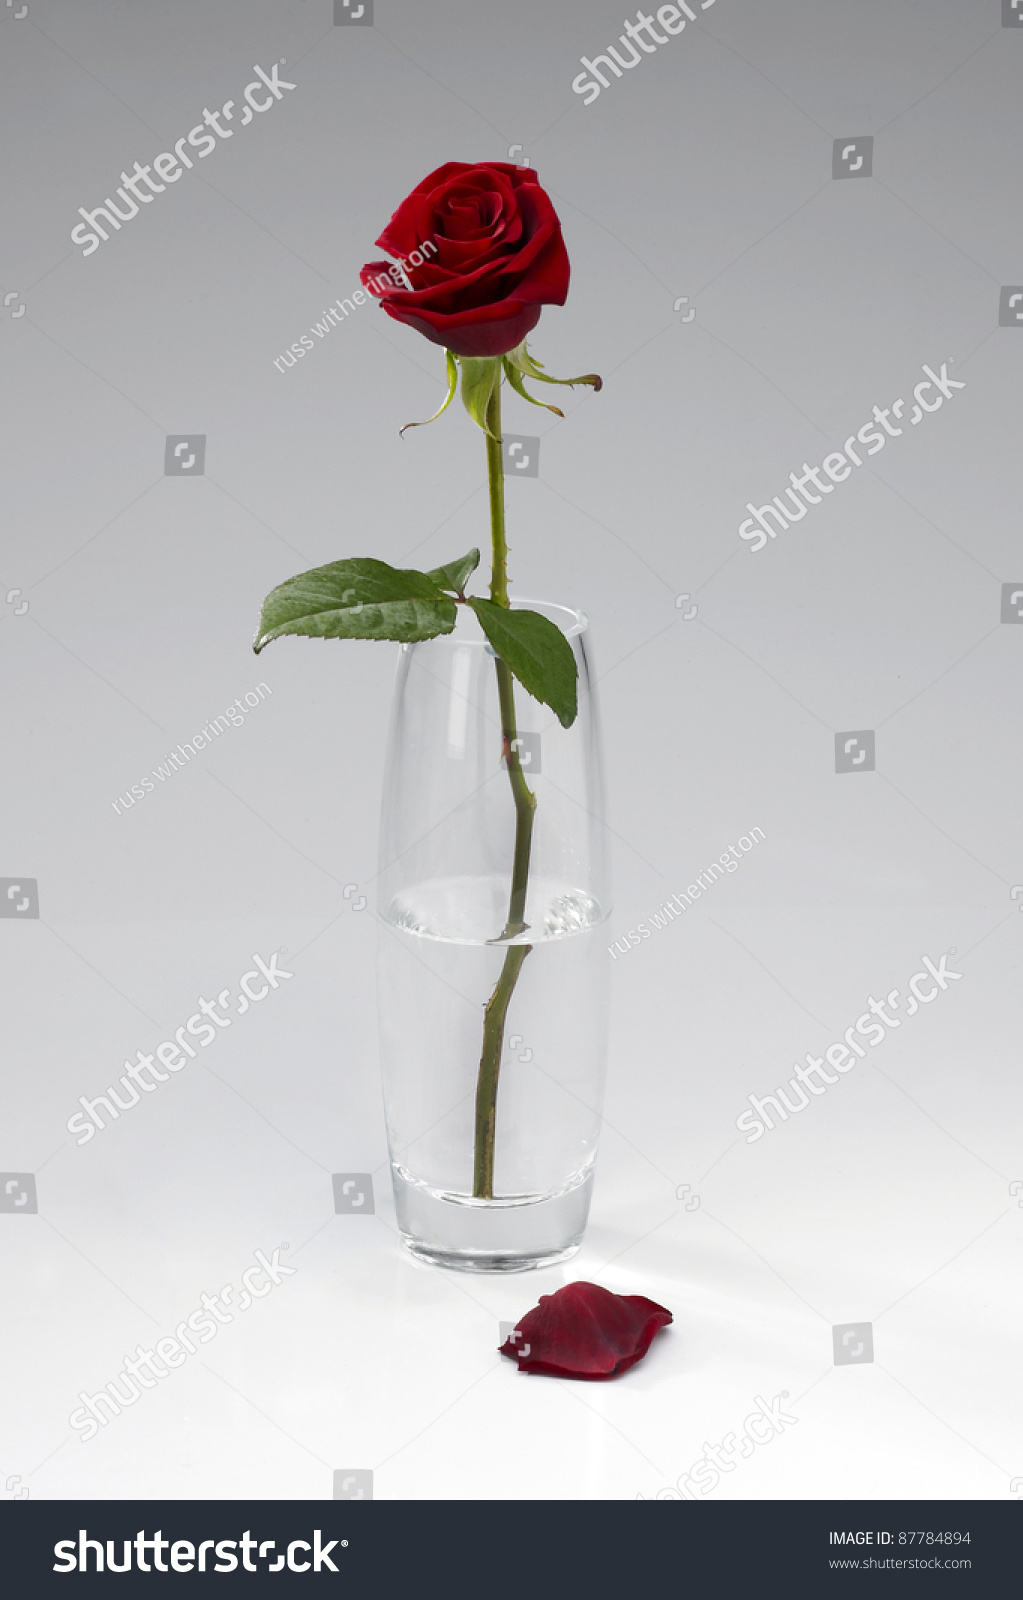 Single red rose stems glass vase stock photo 87784894 shutterstock a single red rose stems in a glass vase with two fallen petals in front against reviewsmspy